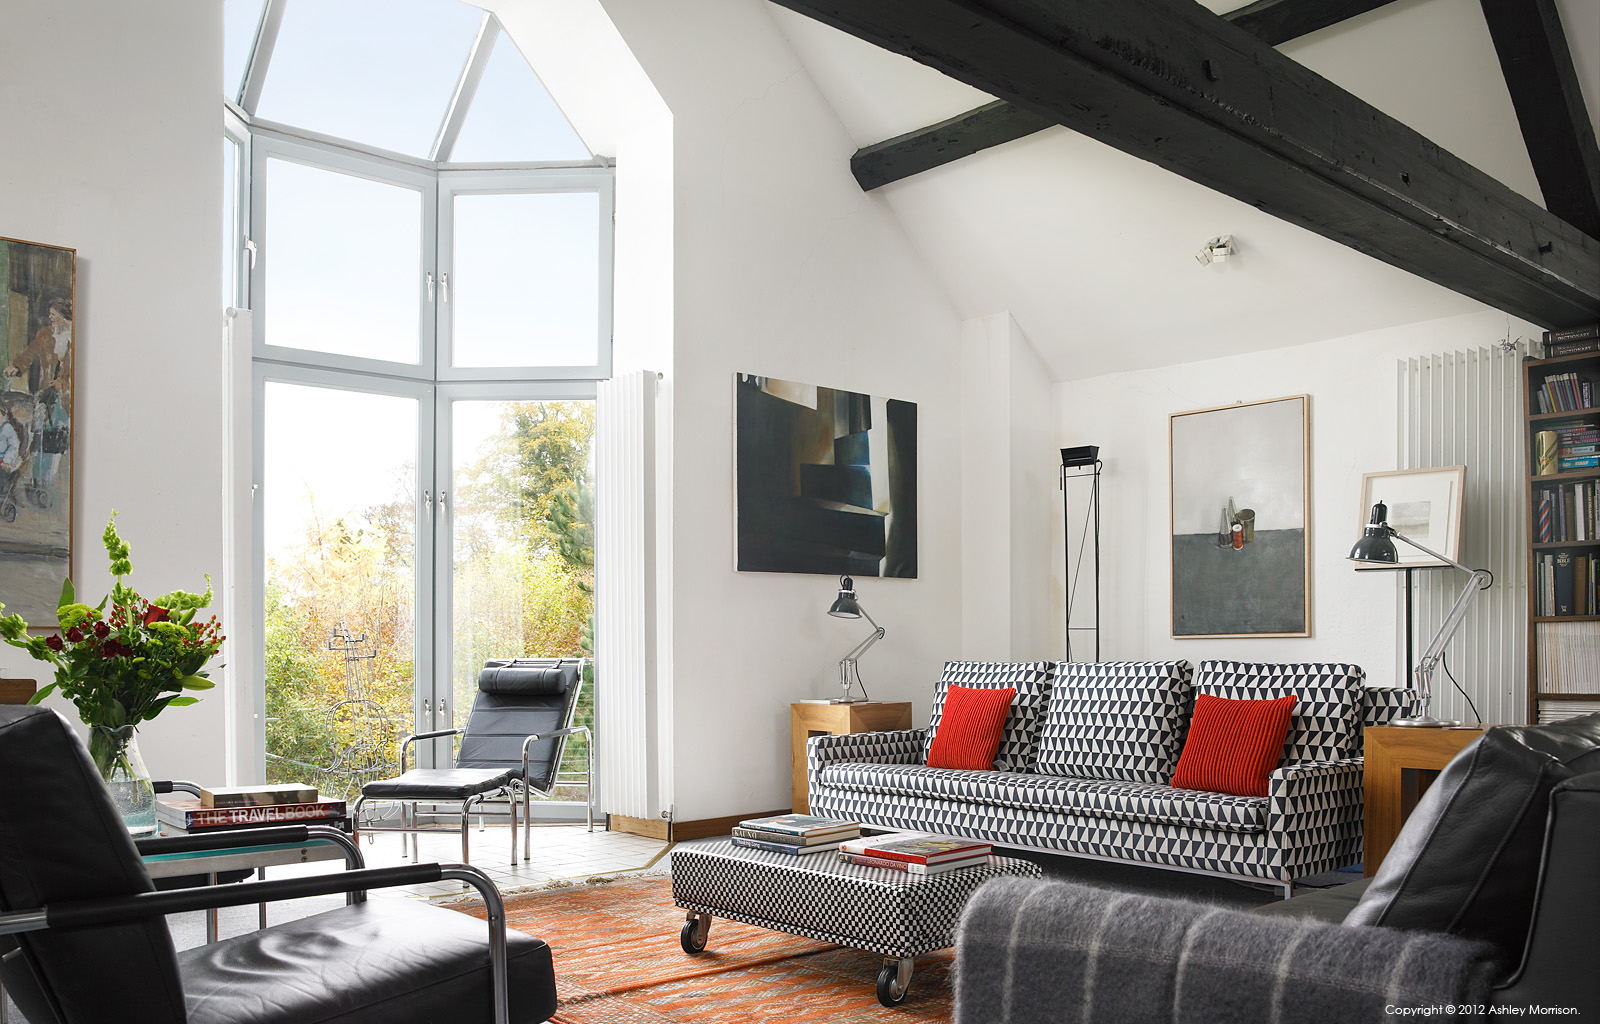 The living room in John Baird's converted Cornmill near Comber in County Down by Ashley Morrison.